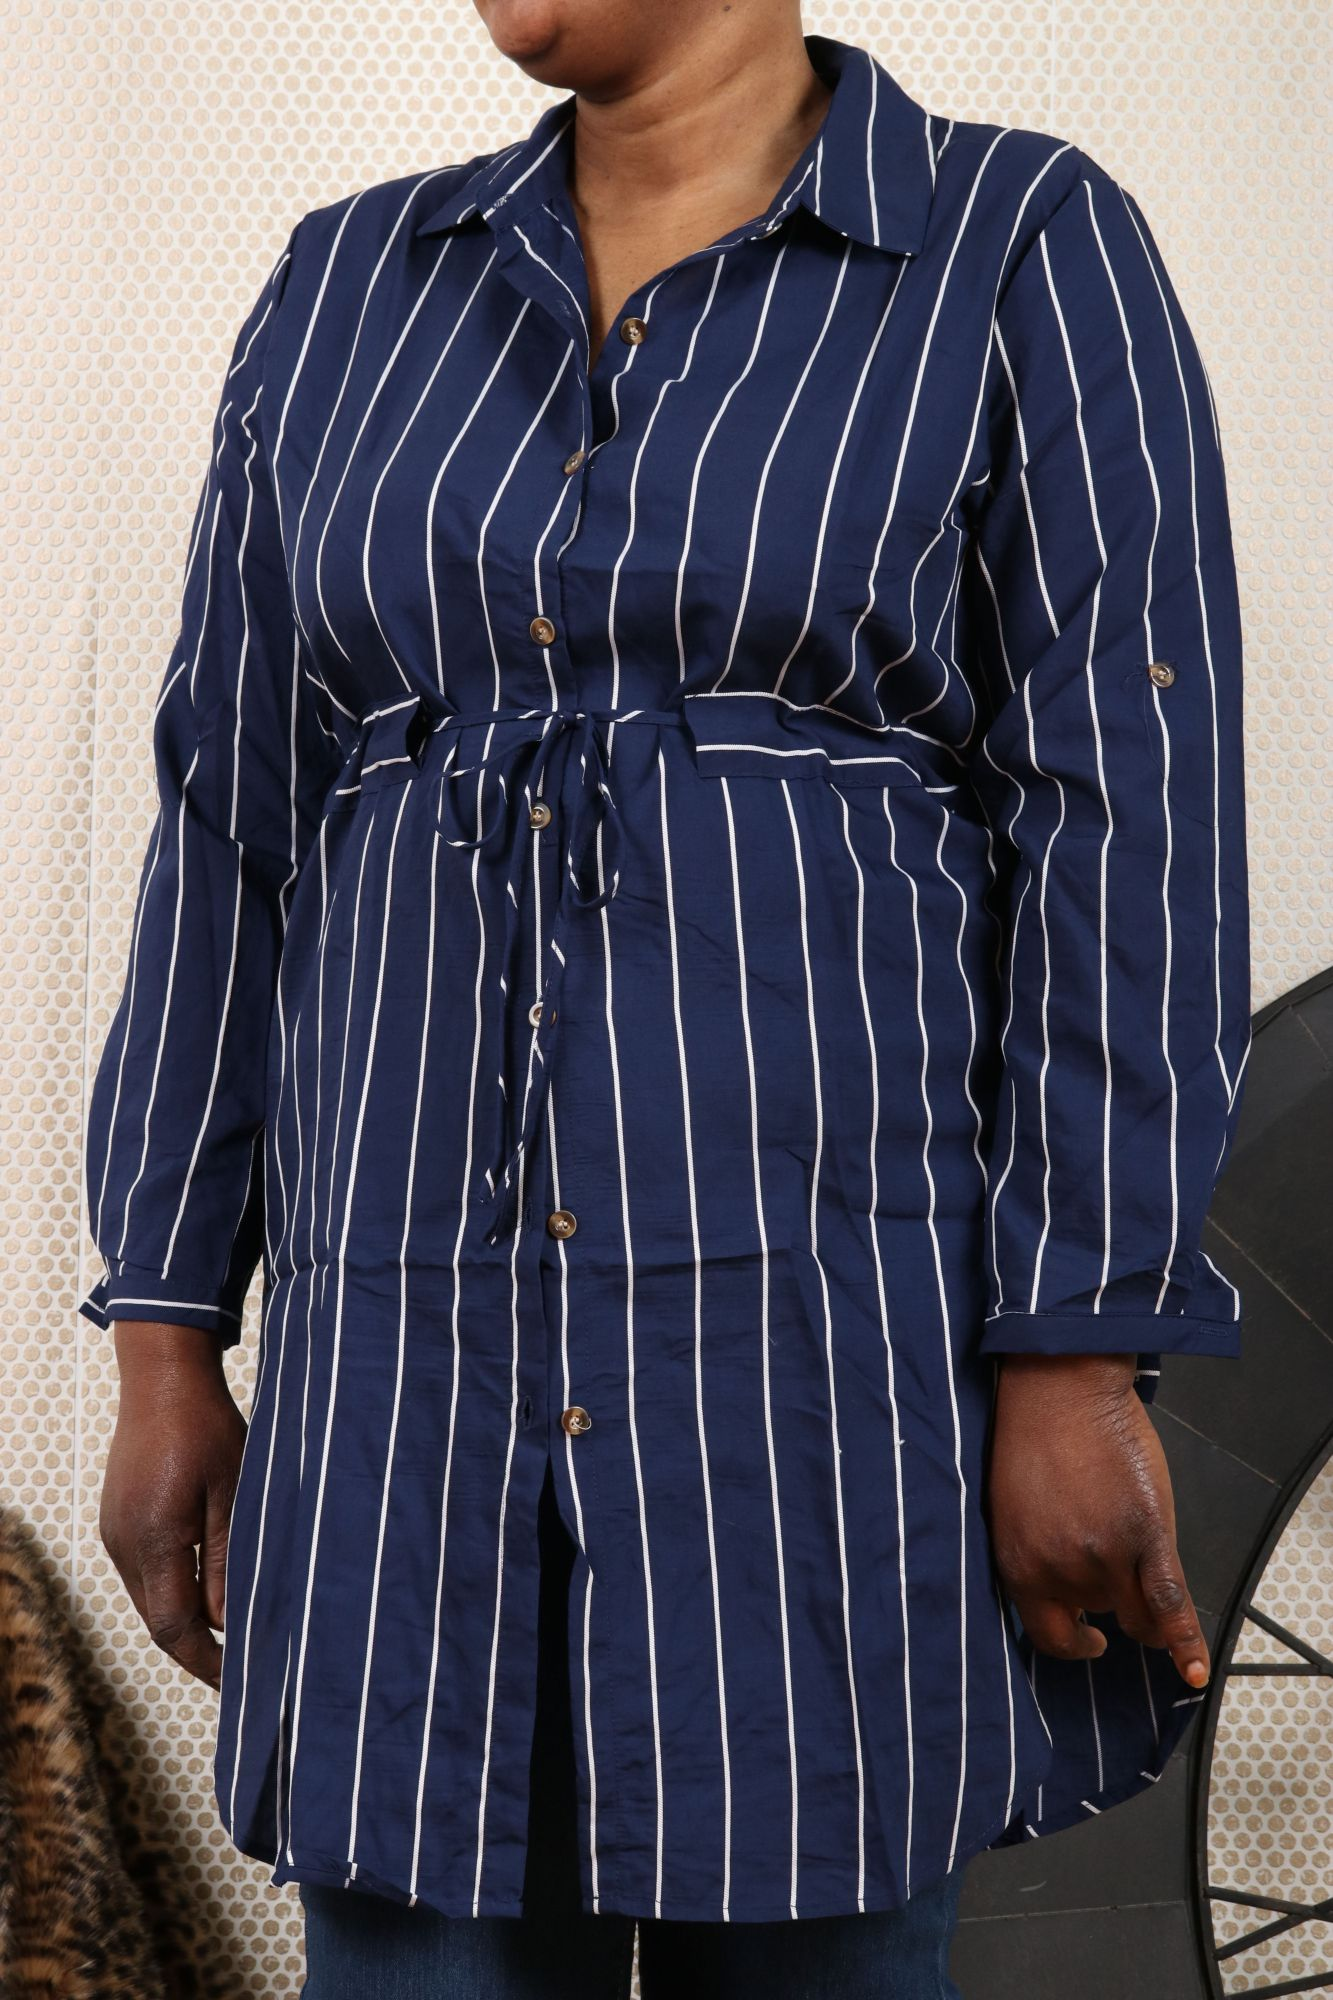 Robe femme grande taille marine à rayures blanches\n5 tailles